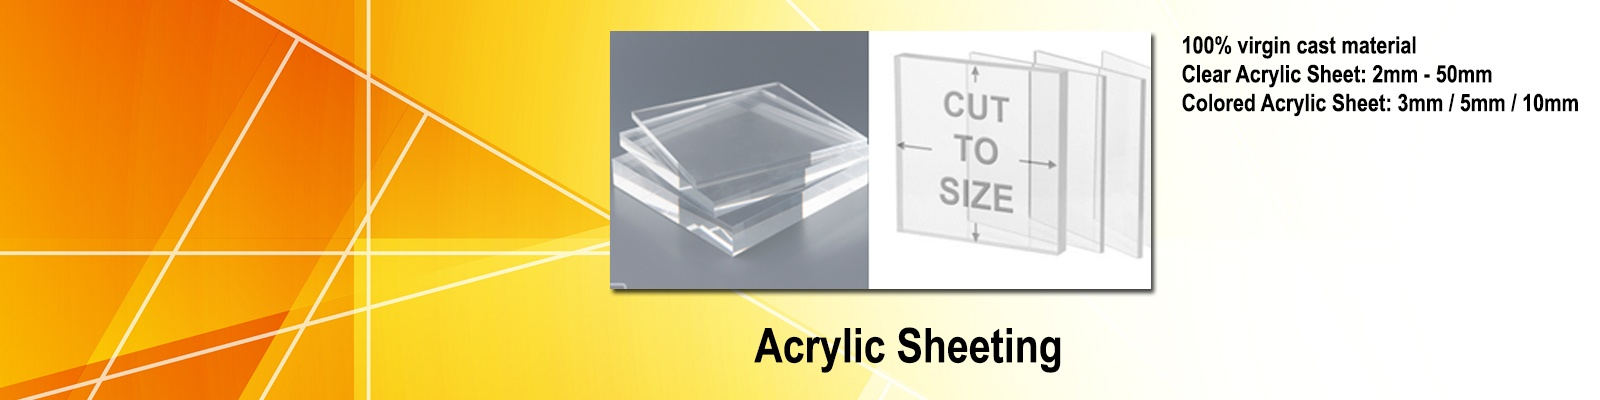 Acrylic Sheeting by Iplastics